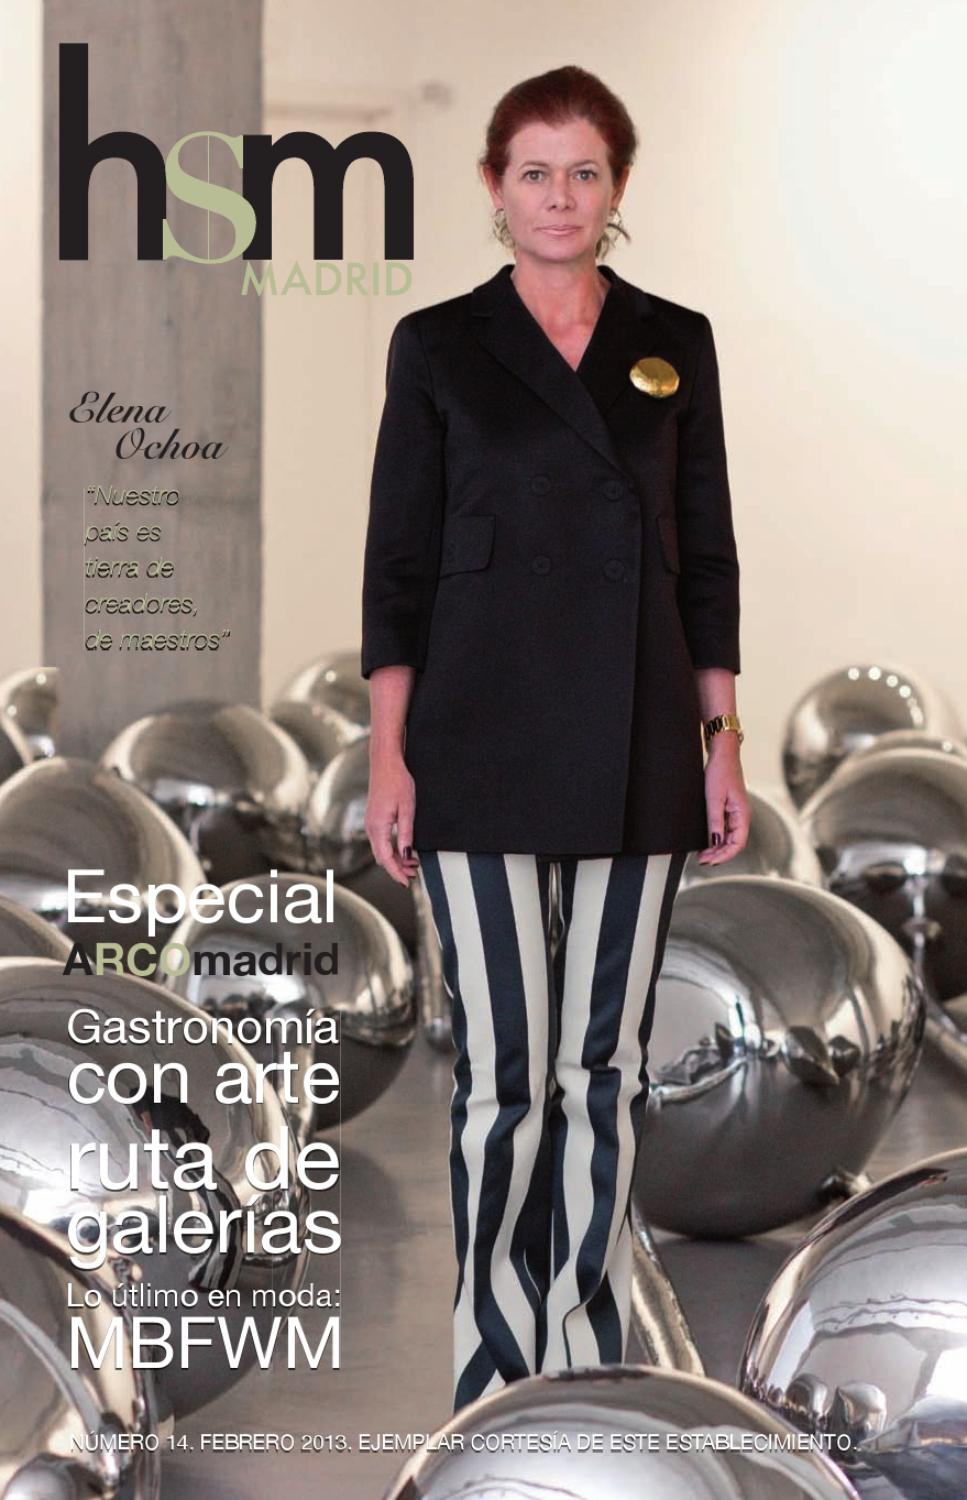 N14 HSM MADRID by Revista hsm 2013 2013 - issuu d8efa777b0f